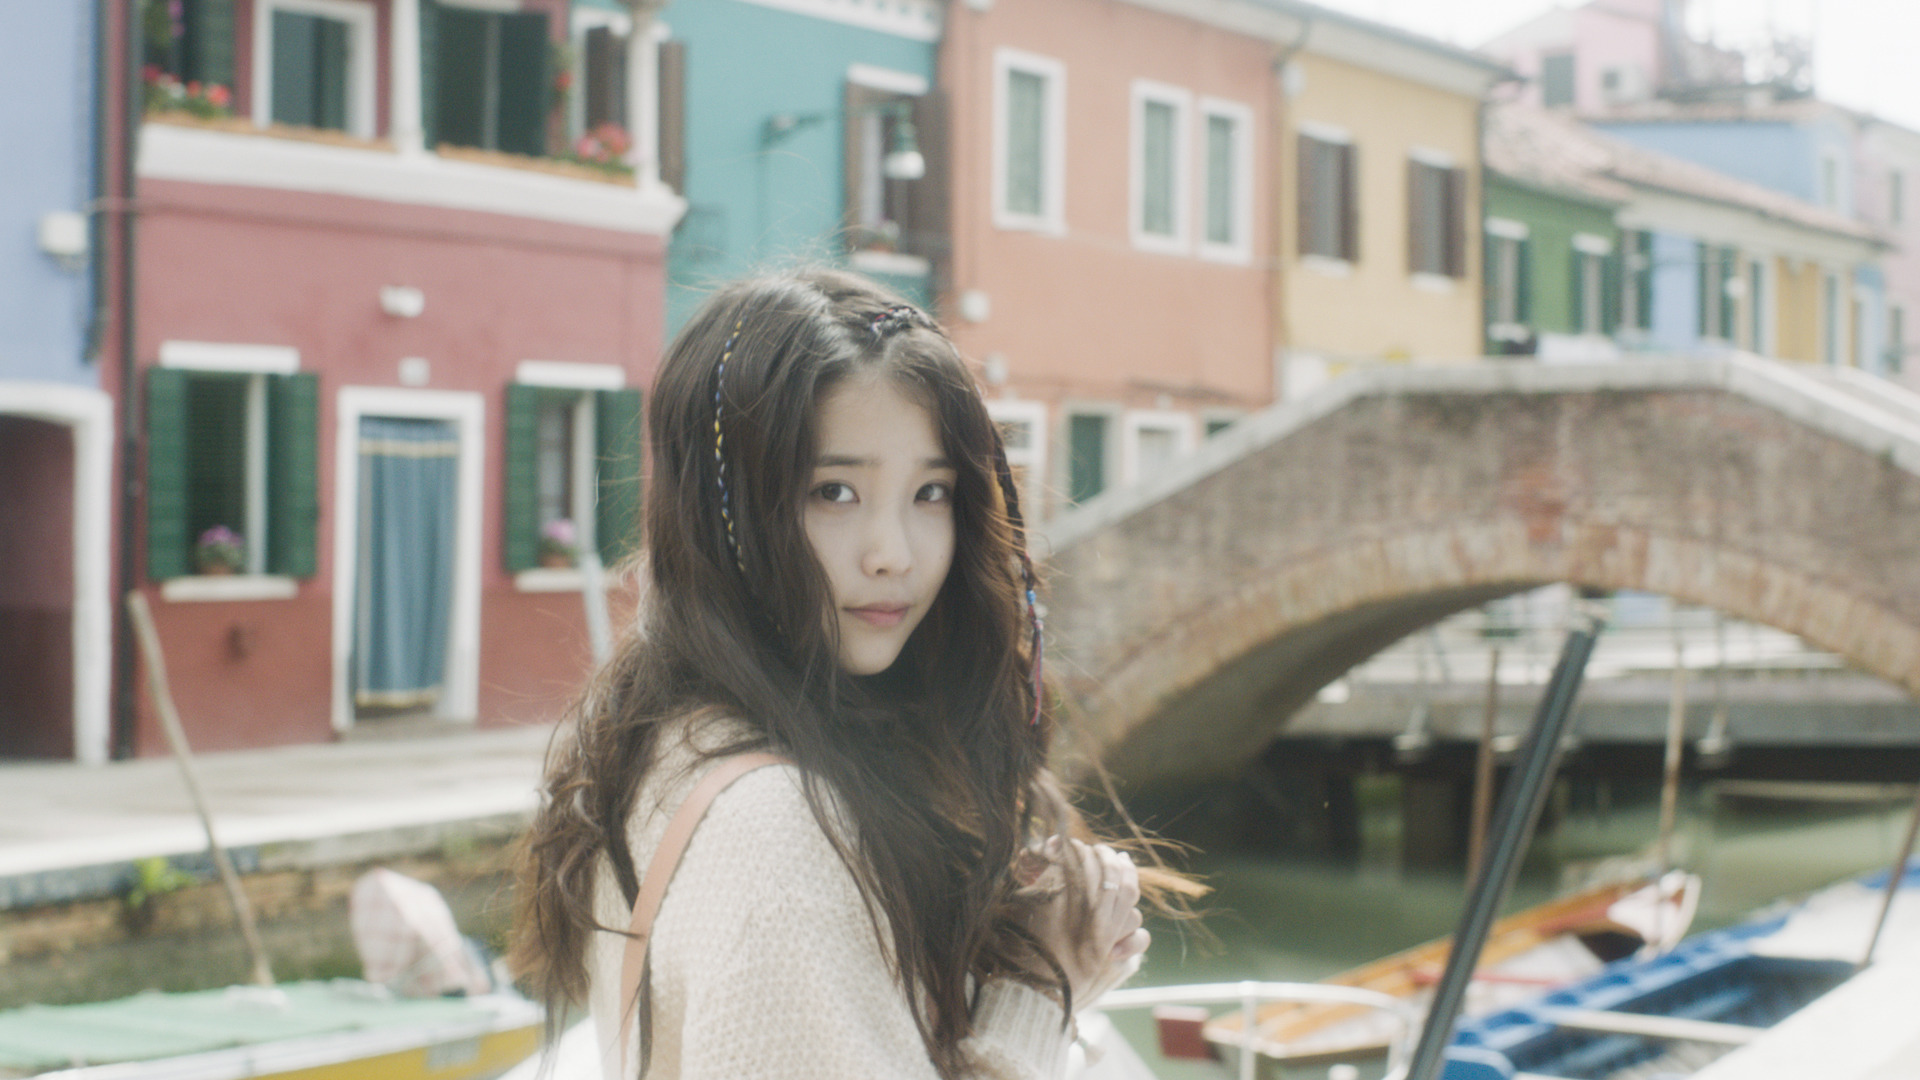 IU HD Wallpaper #41432 - Asiachan KPOP Image Board